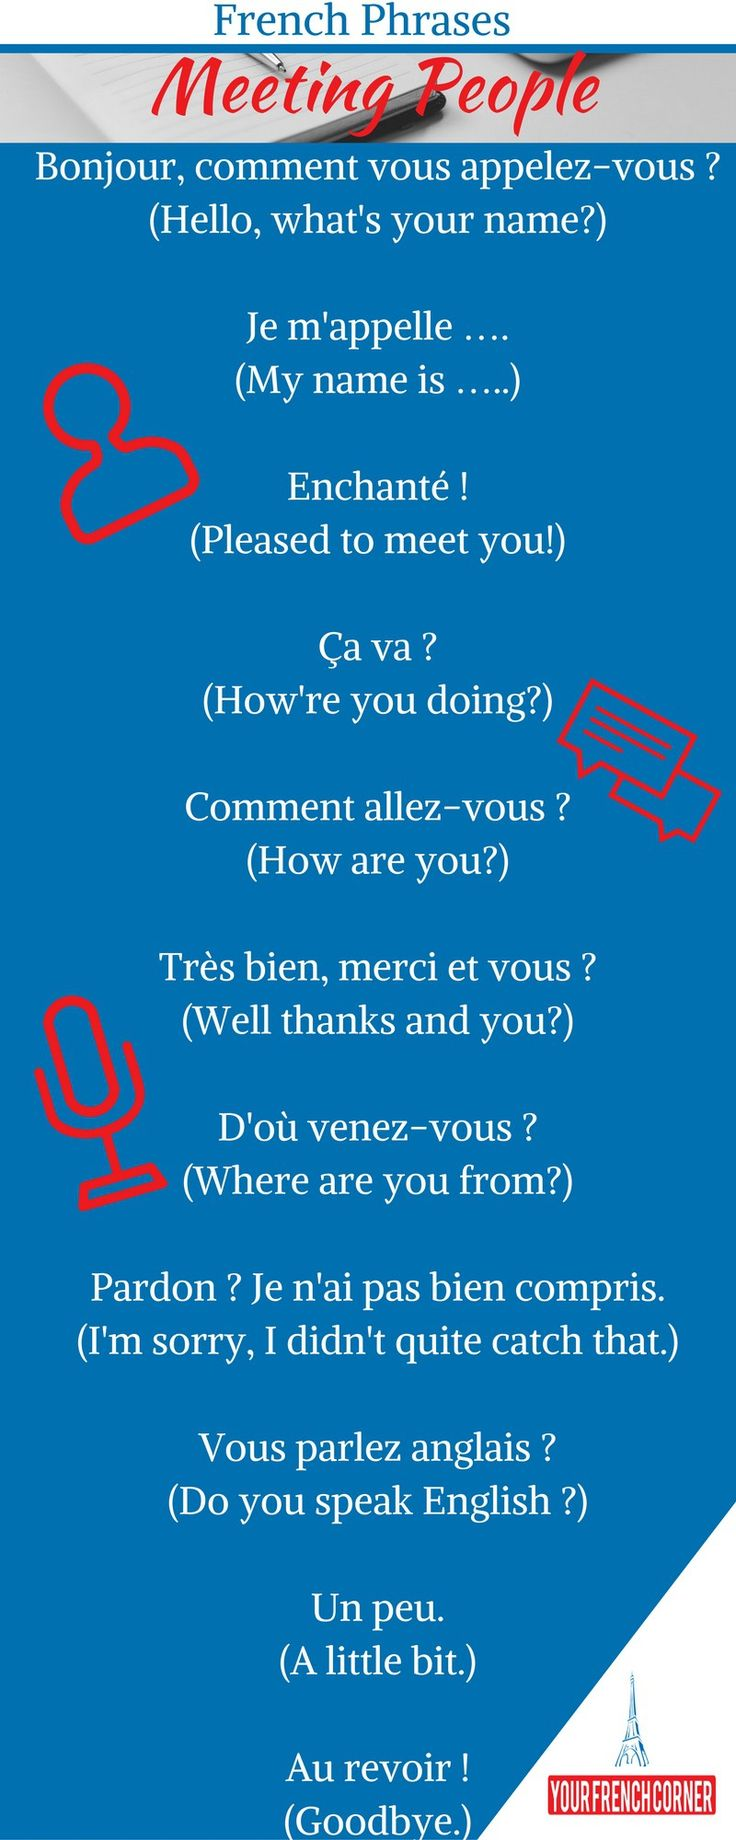 French Courses - Online Classes with Videos | Study.com